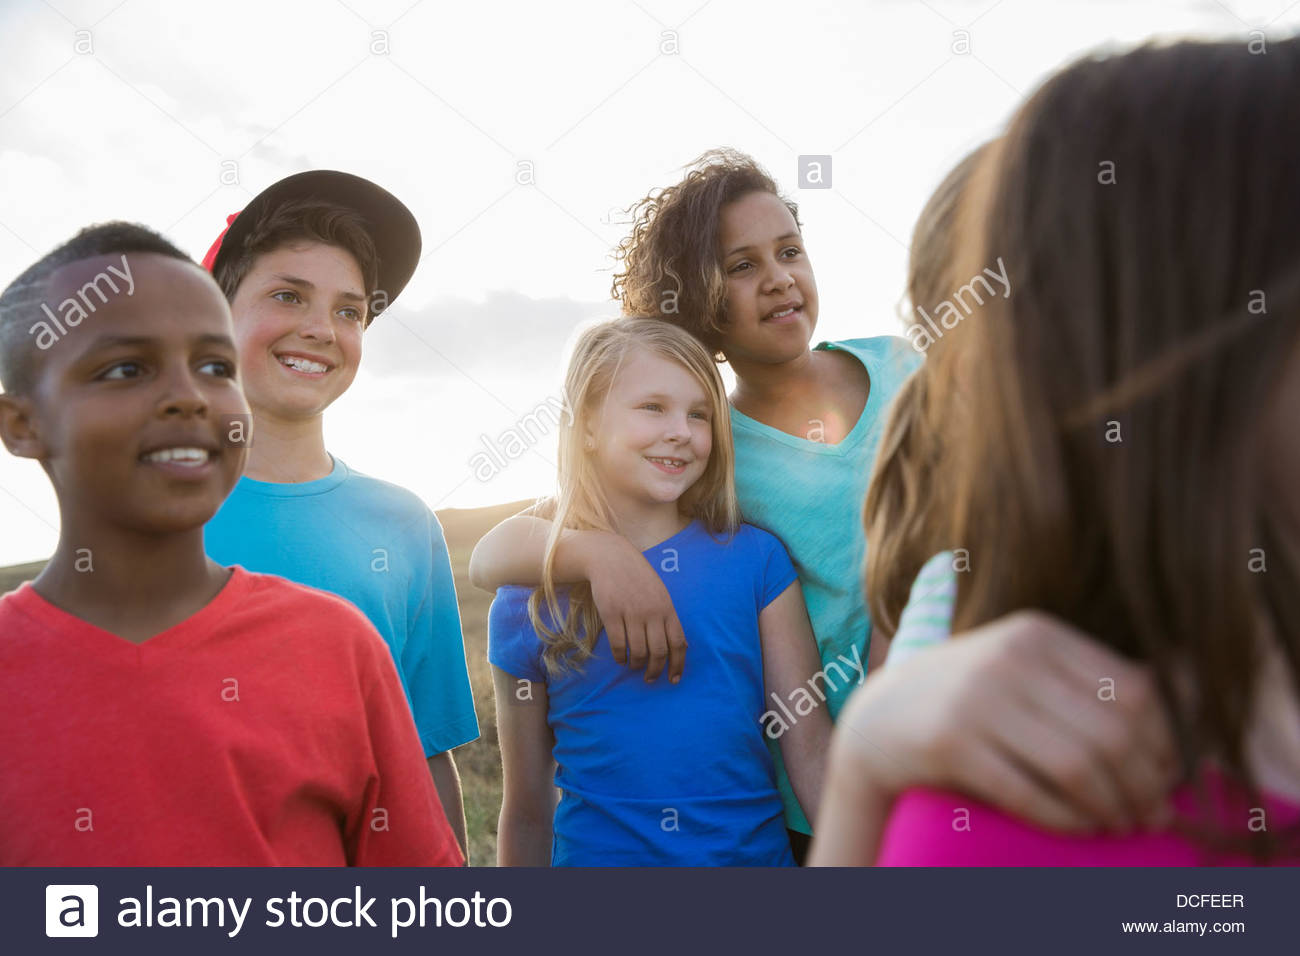 Groupe d'enfants Standing together outdoors Photo Stock